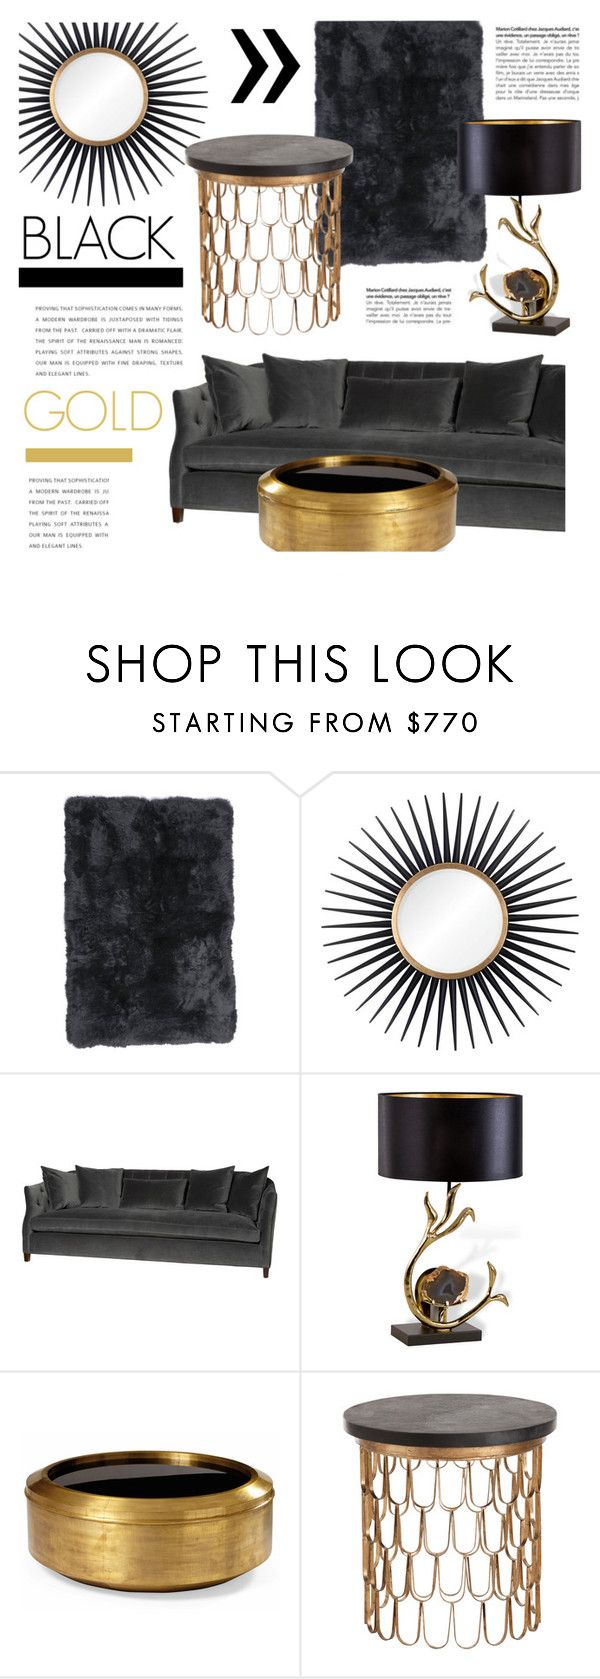 """Black & Gold Decor"" by kathykuohome ❤ liked on Polyvore featuring interior, interiors, interior design, home, home decor, interior decorating, Otis, gold, black and Home"